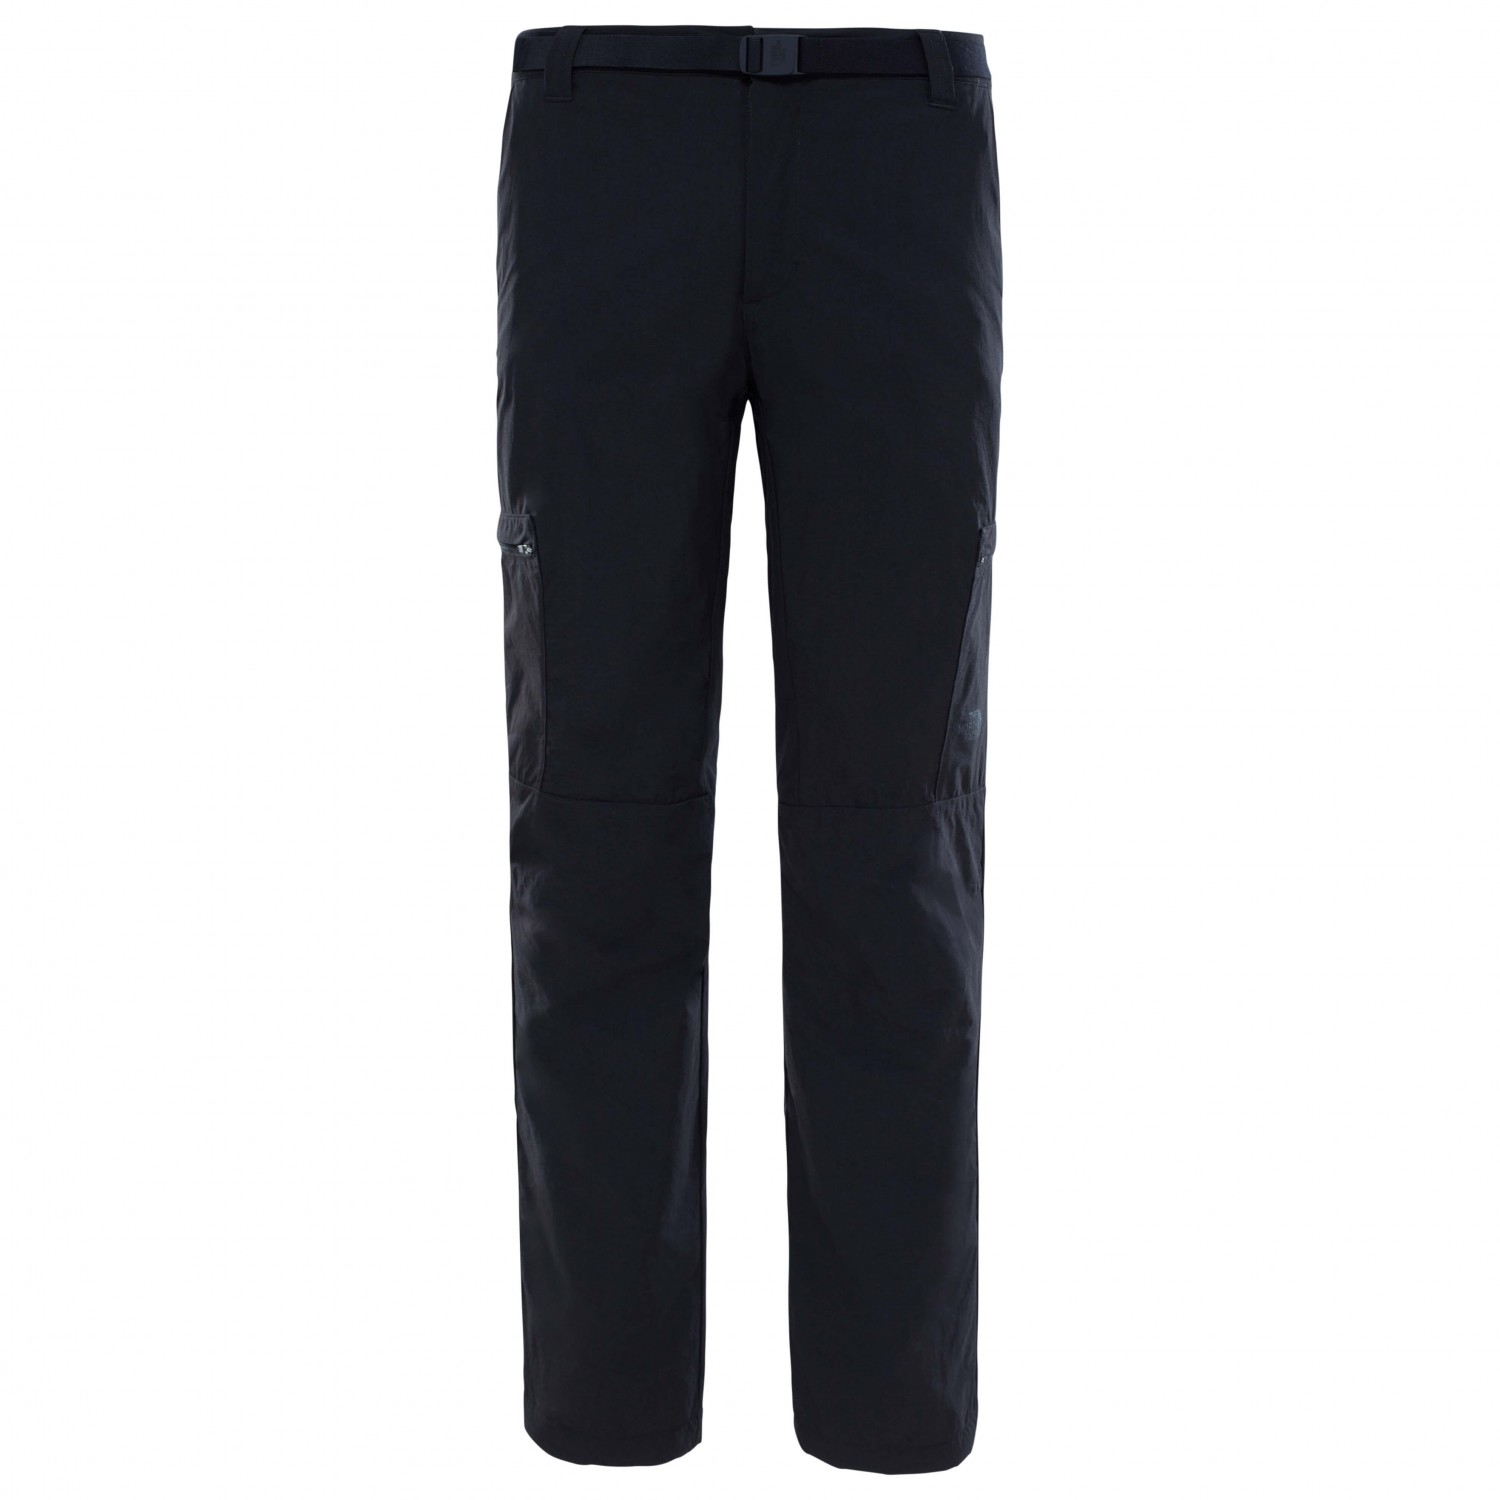 421140b15 The North Face - Winter Exploration Cargo - Winter trousers - TNF Black |  28 - Regular (US)